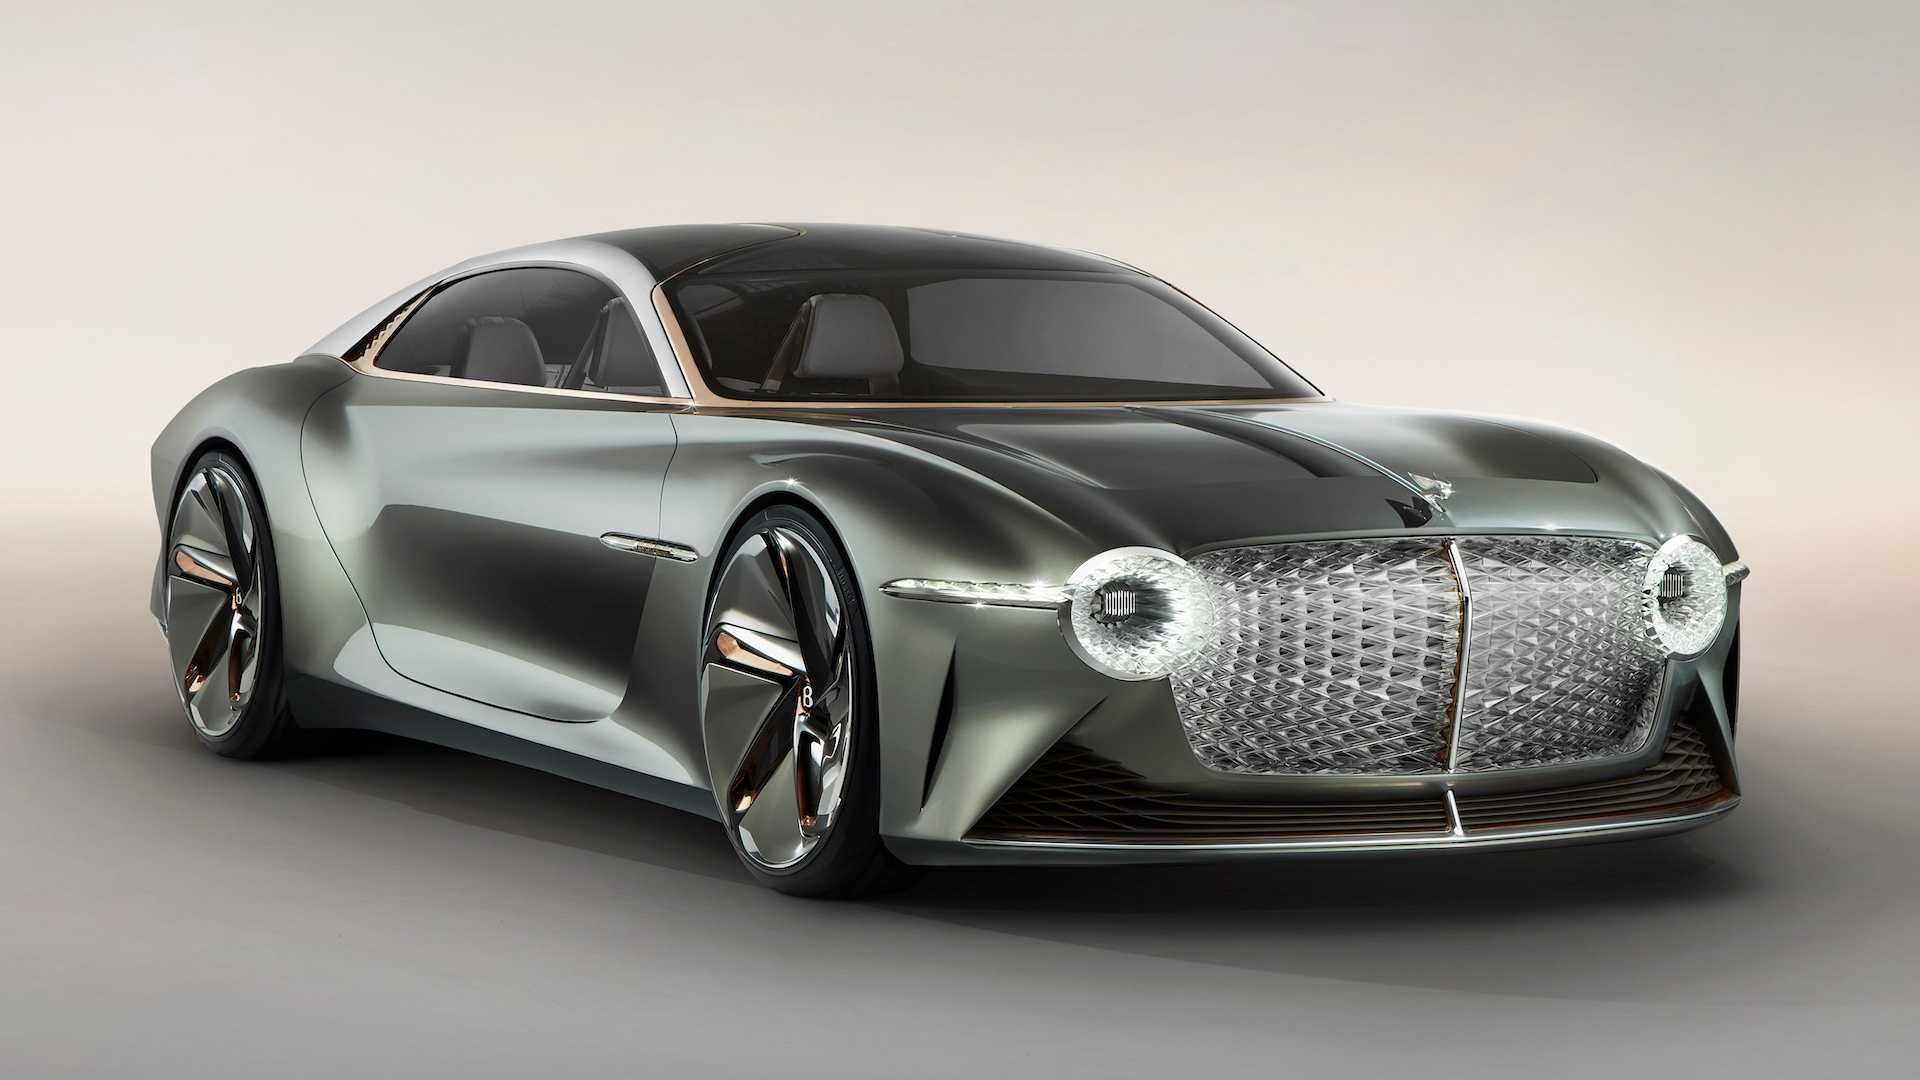 Bentley Exp 100 Gt Is An Ultra Luxury Electric Car For The Future Bentley Concept Cars Car